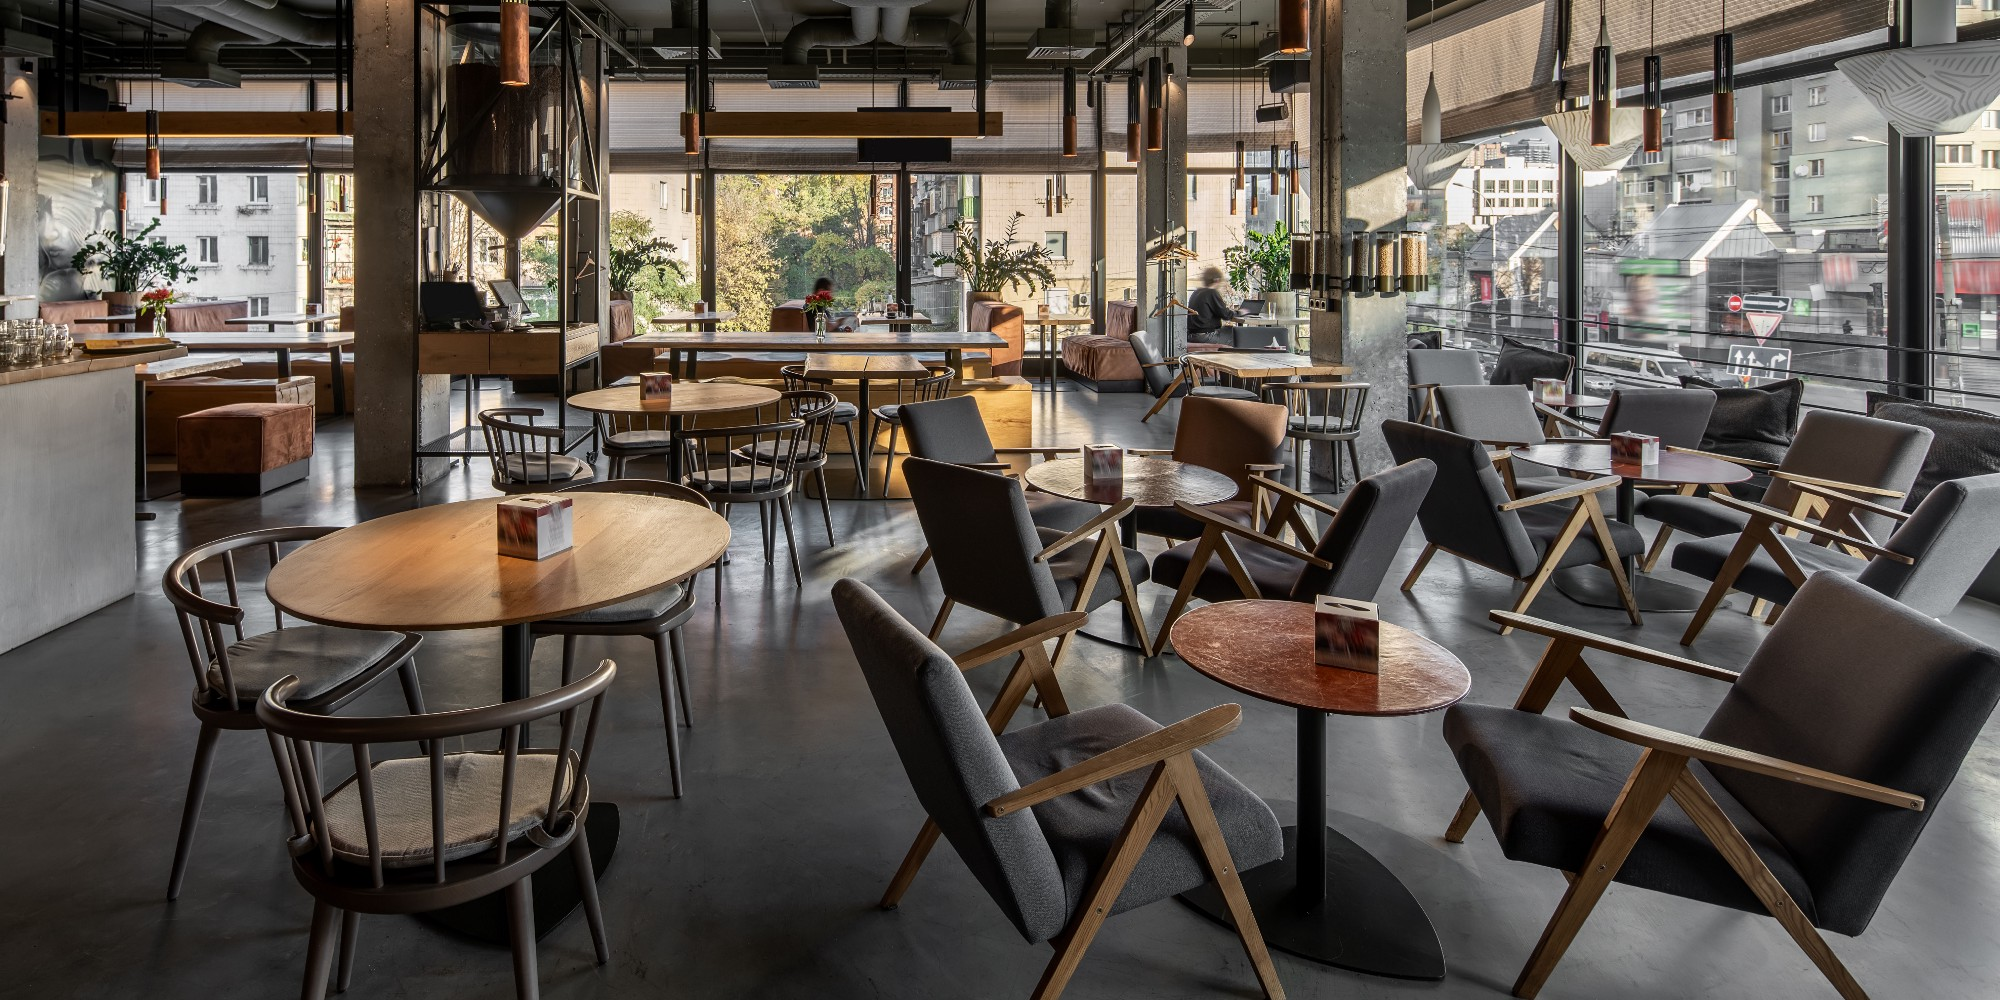 Image of a café room filled with tables and chairs